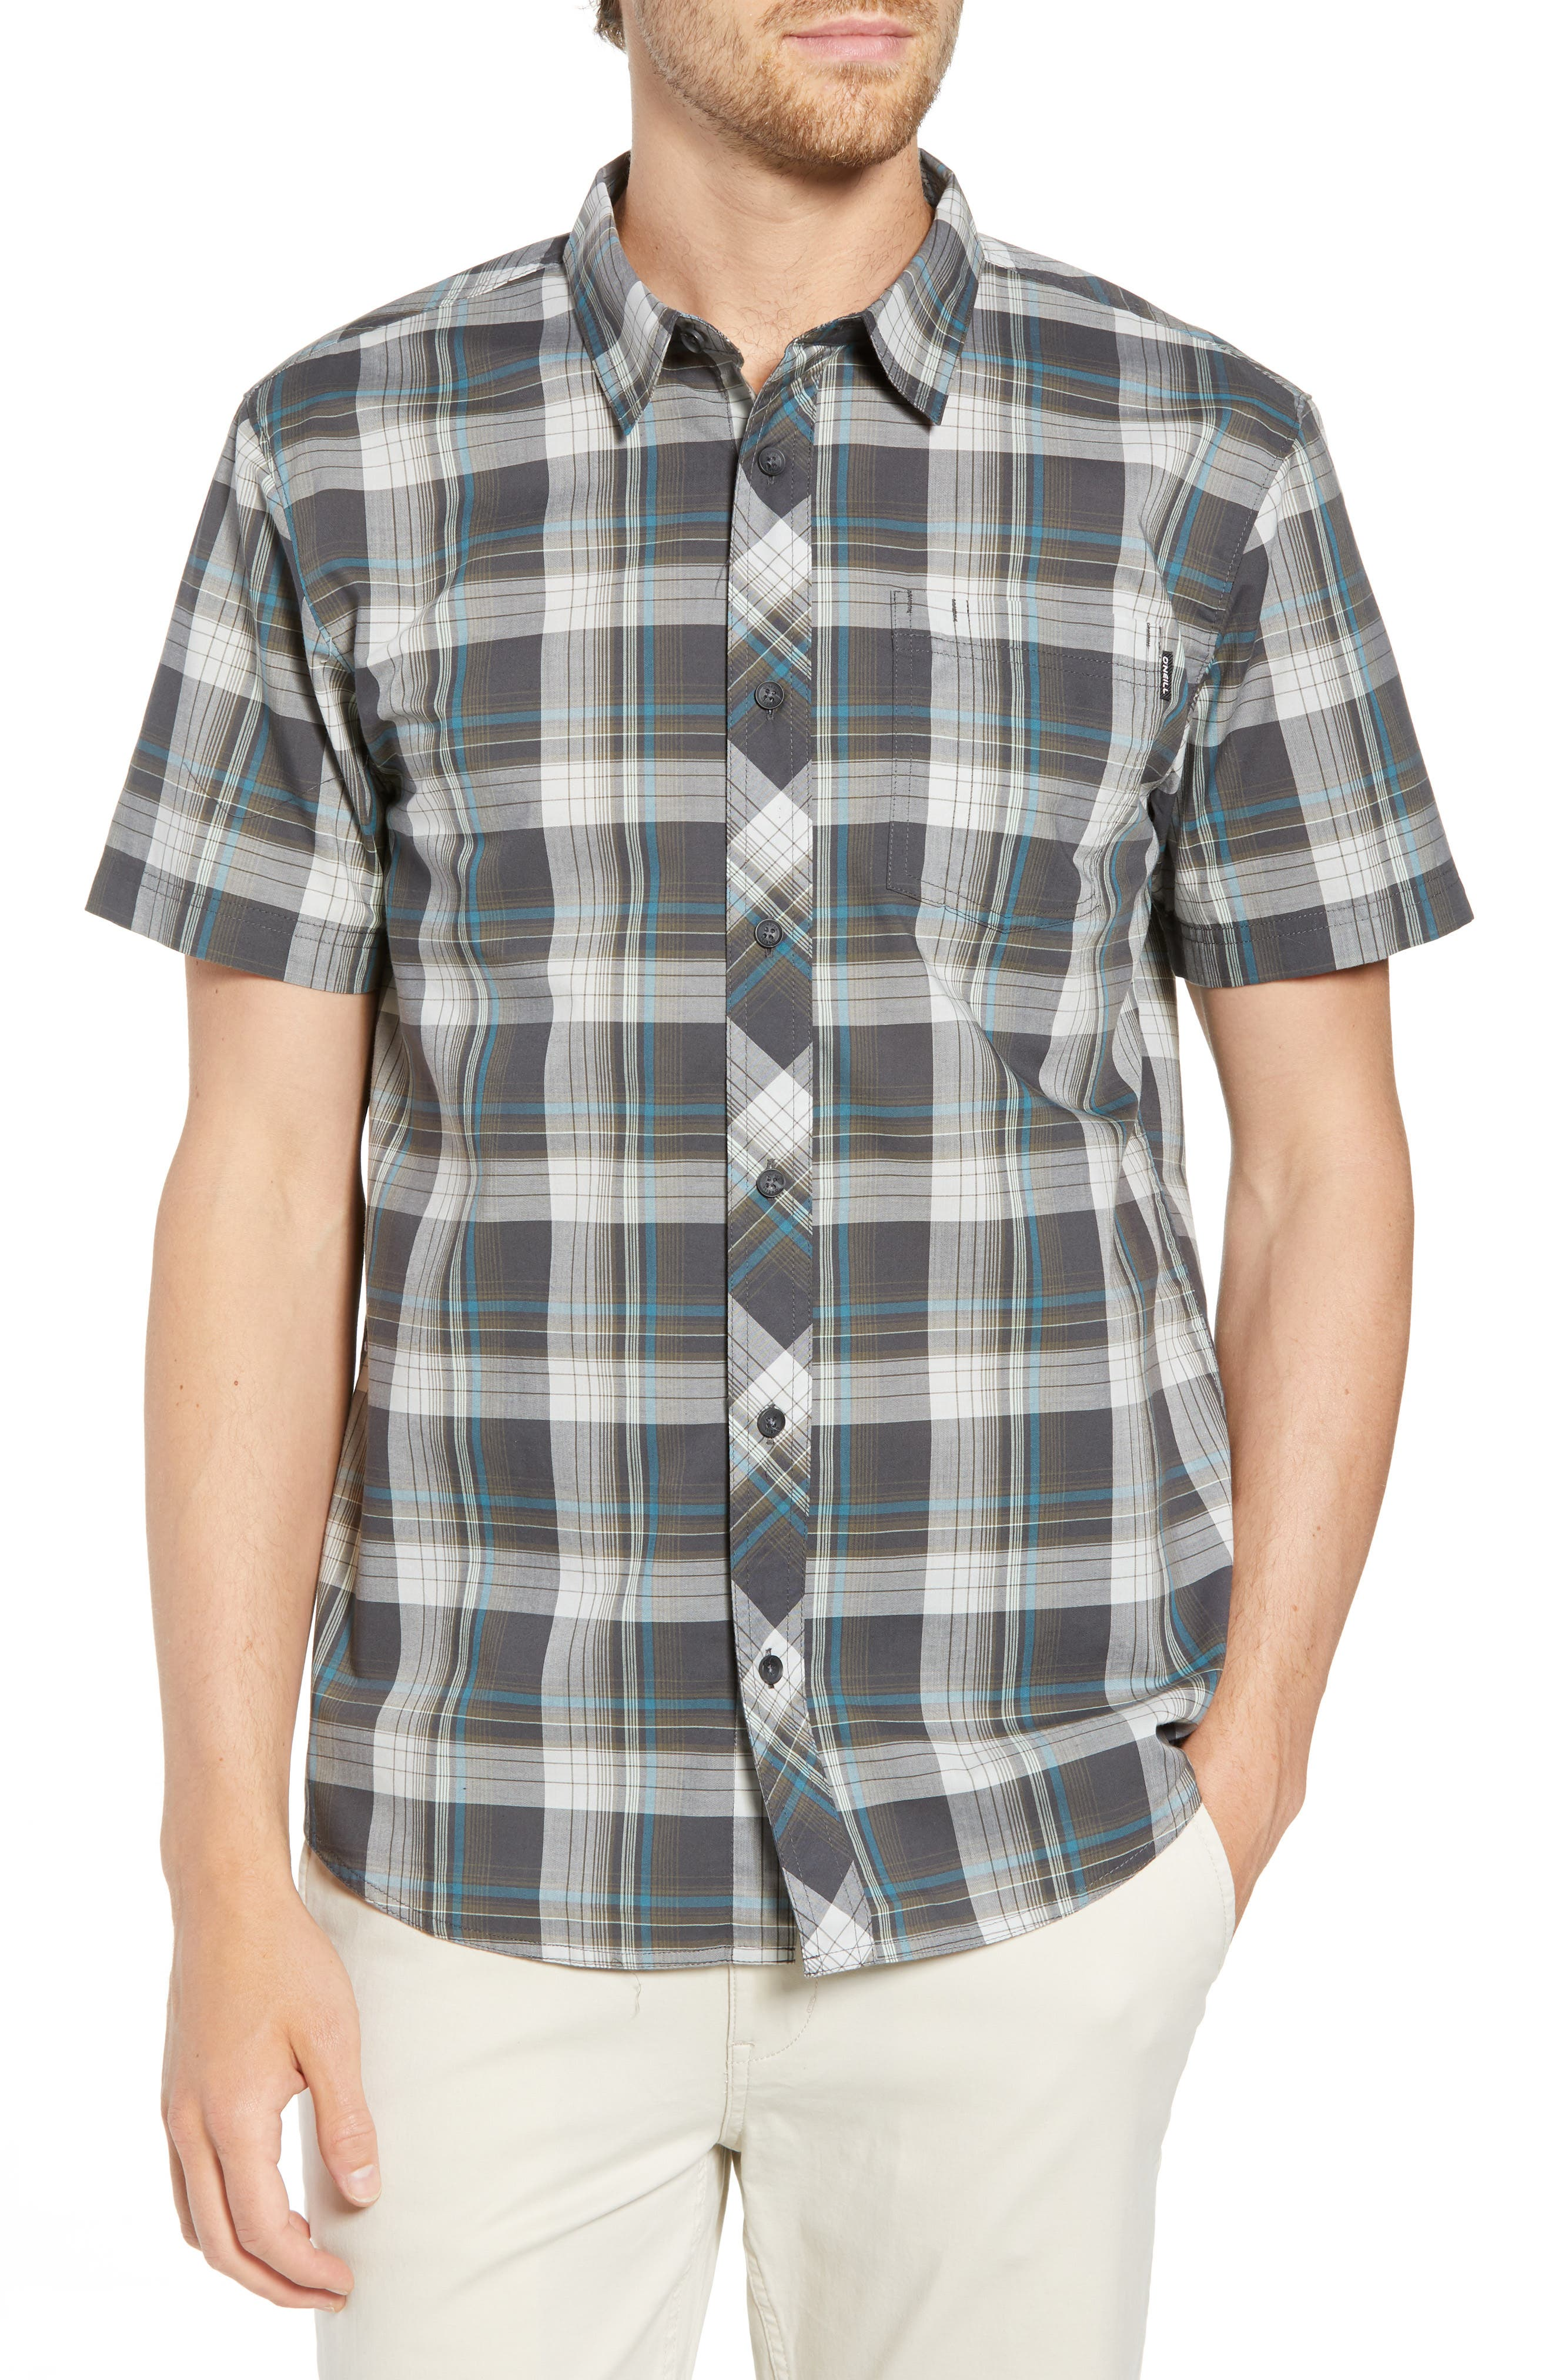 Gentry Short Sleeve Shirt,                         Main,                         color, 020